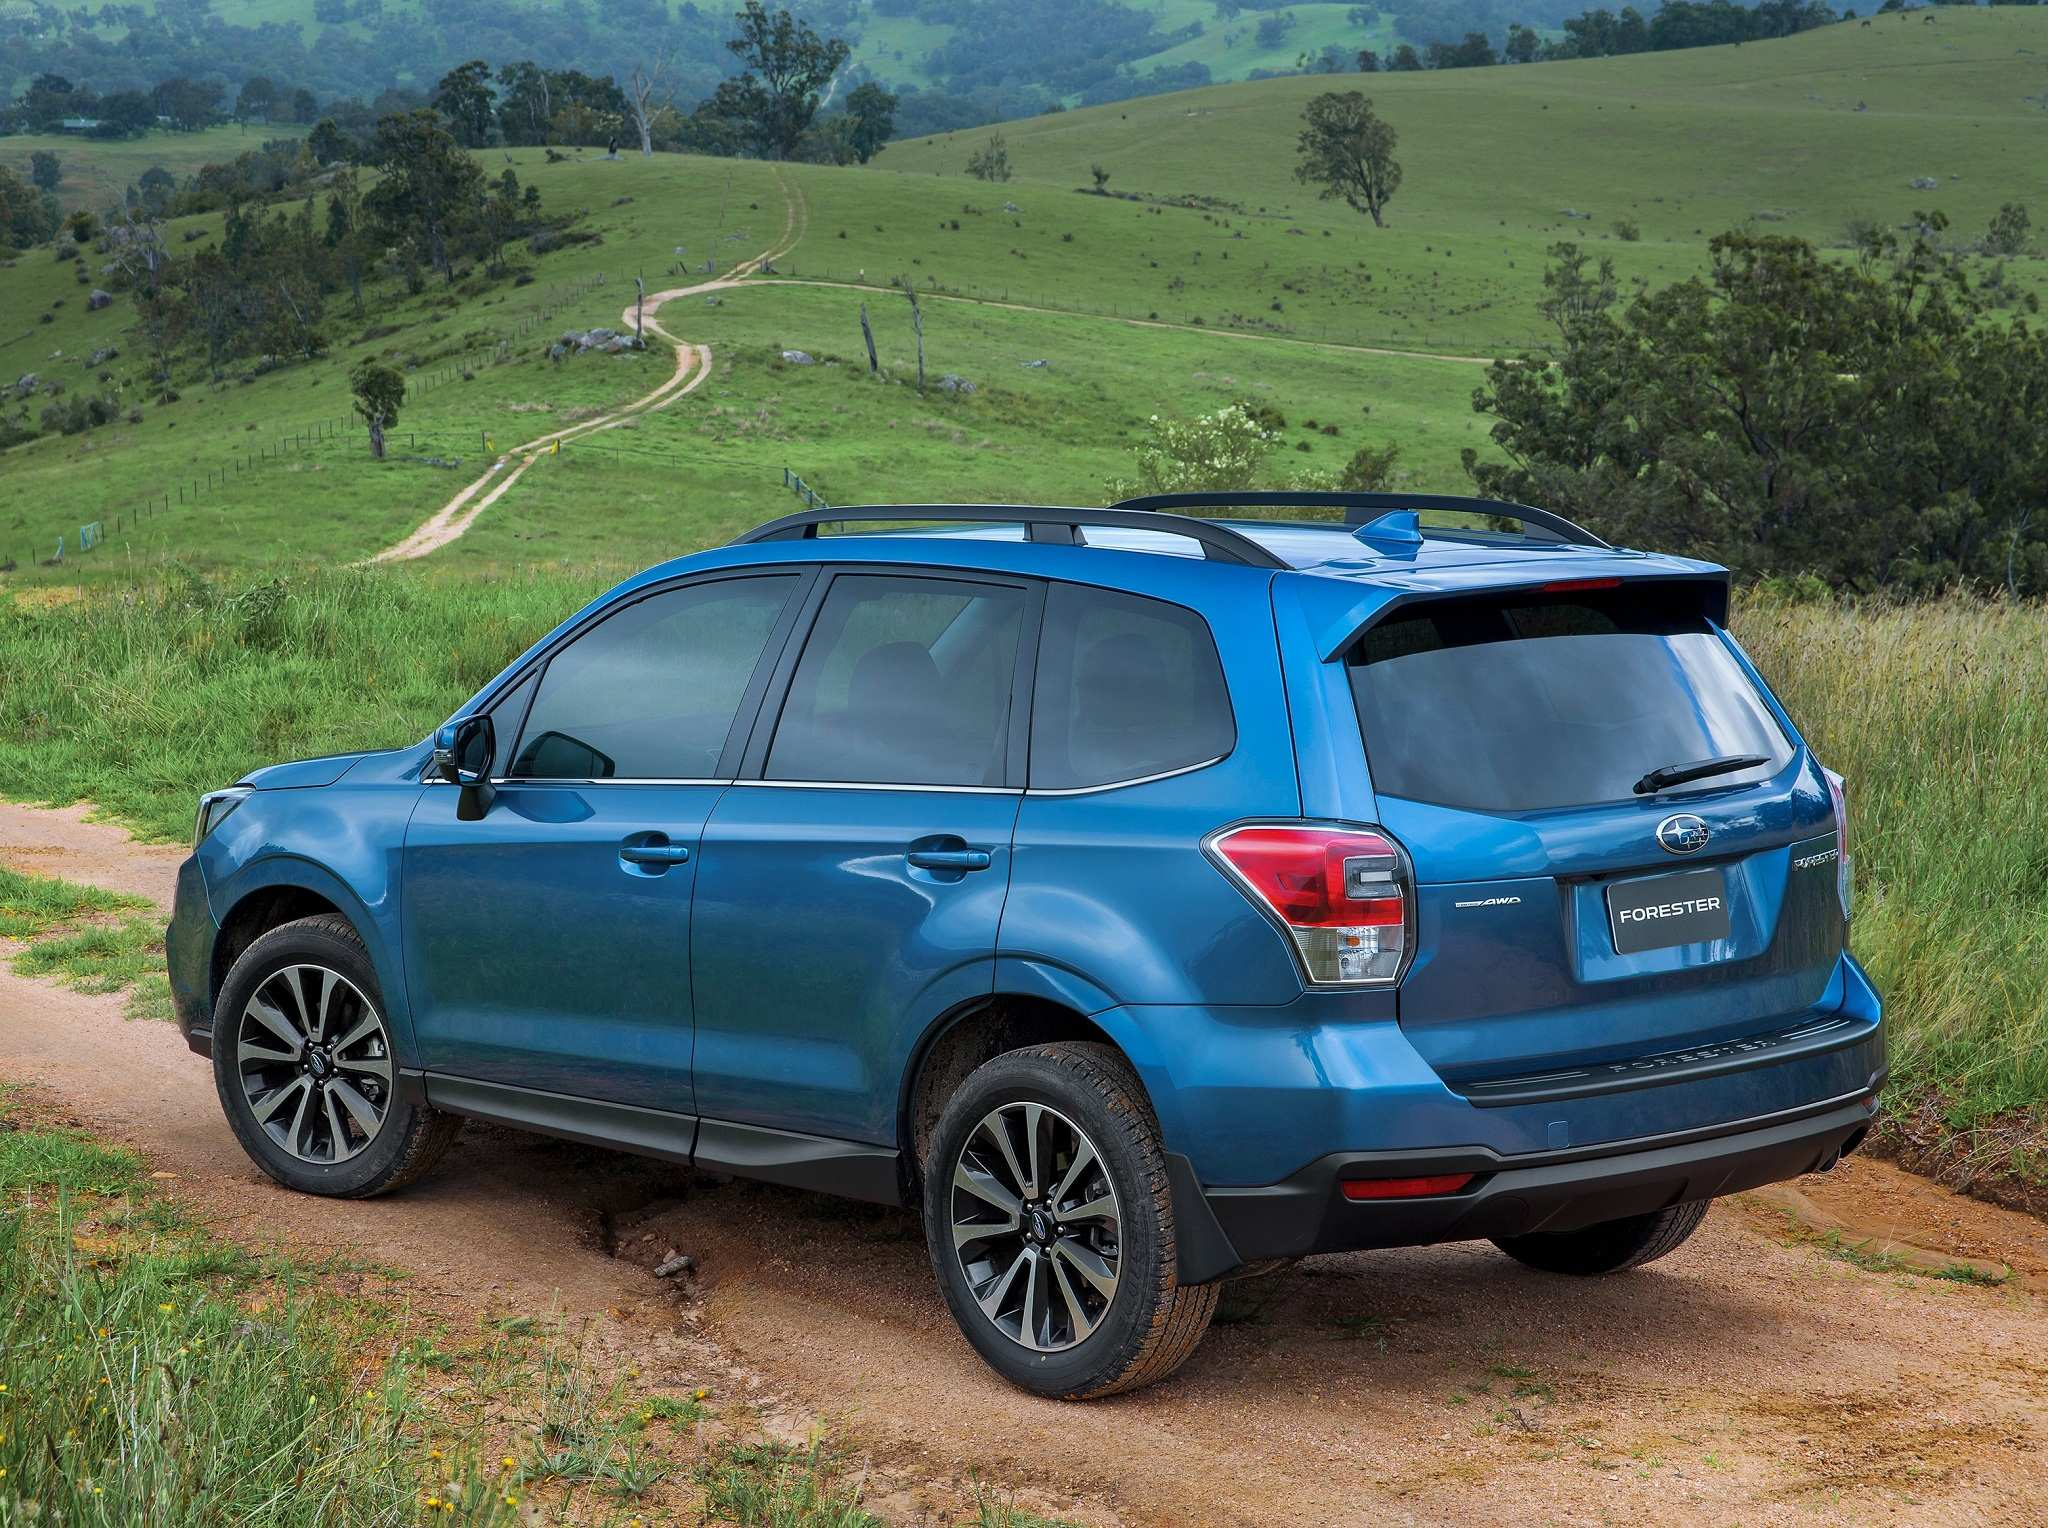 33 Concept of 2020 Subaru Forester Unveiling Prices for 2020 Subaru Forester Unveiling